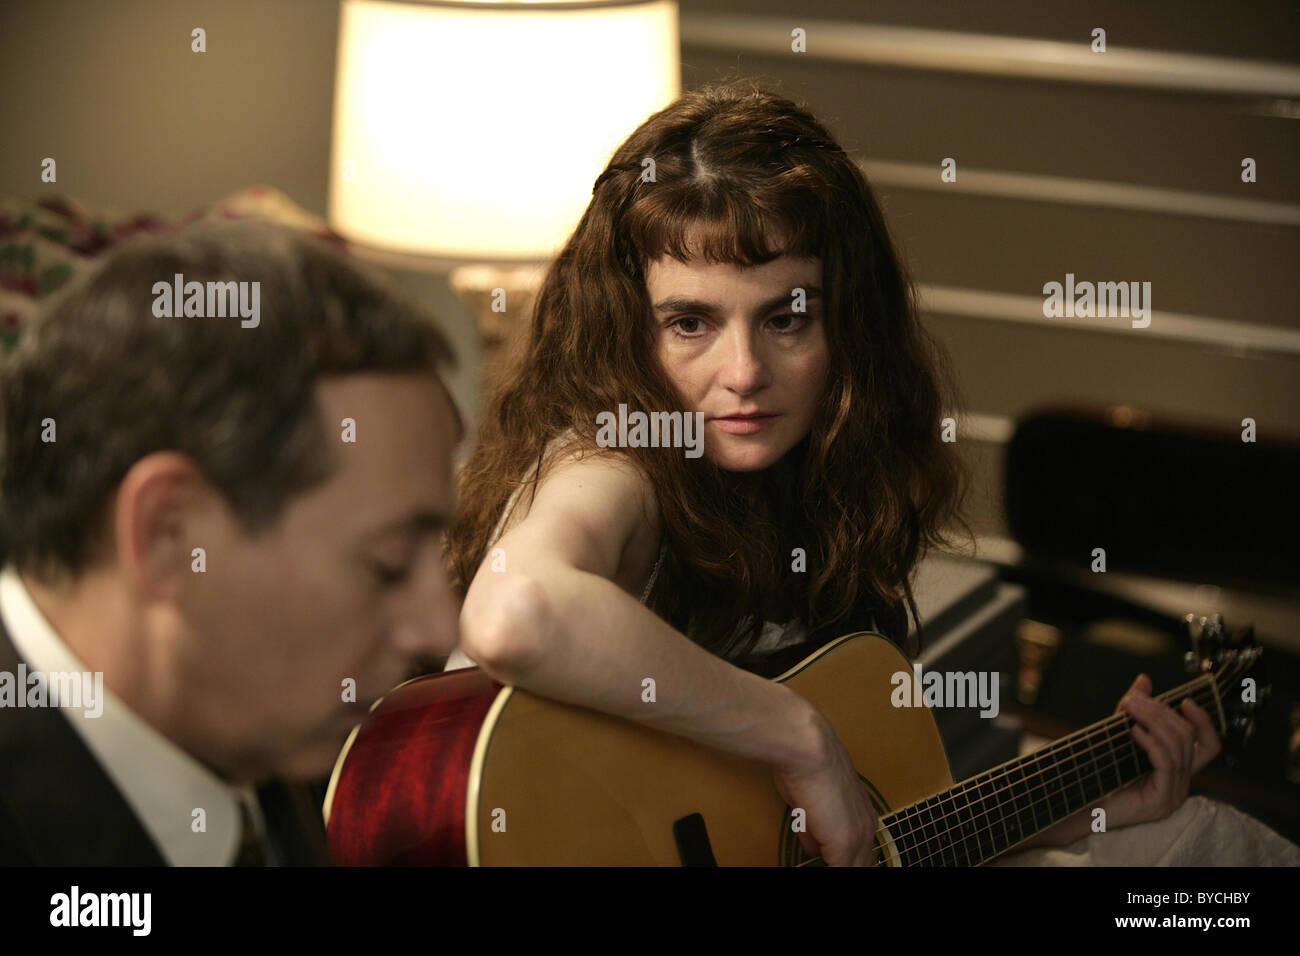 LIFE DURING WARTIME (2009) SHIRLEY HENDERSON, PAUL REUBENS TODD SOLONDZ (DIR) 003 MOVIESTORE COLLECTION LTD - Stock Image